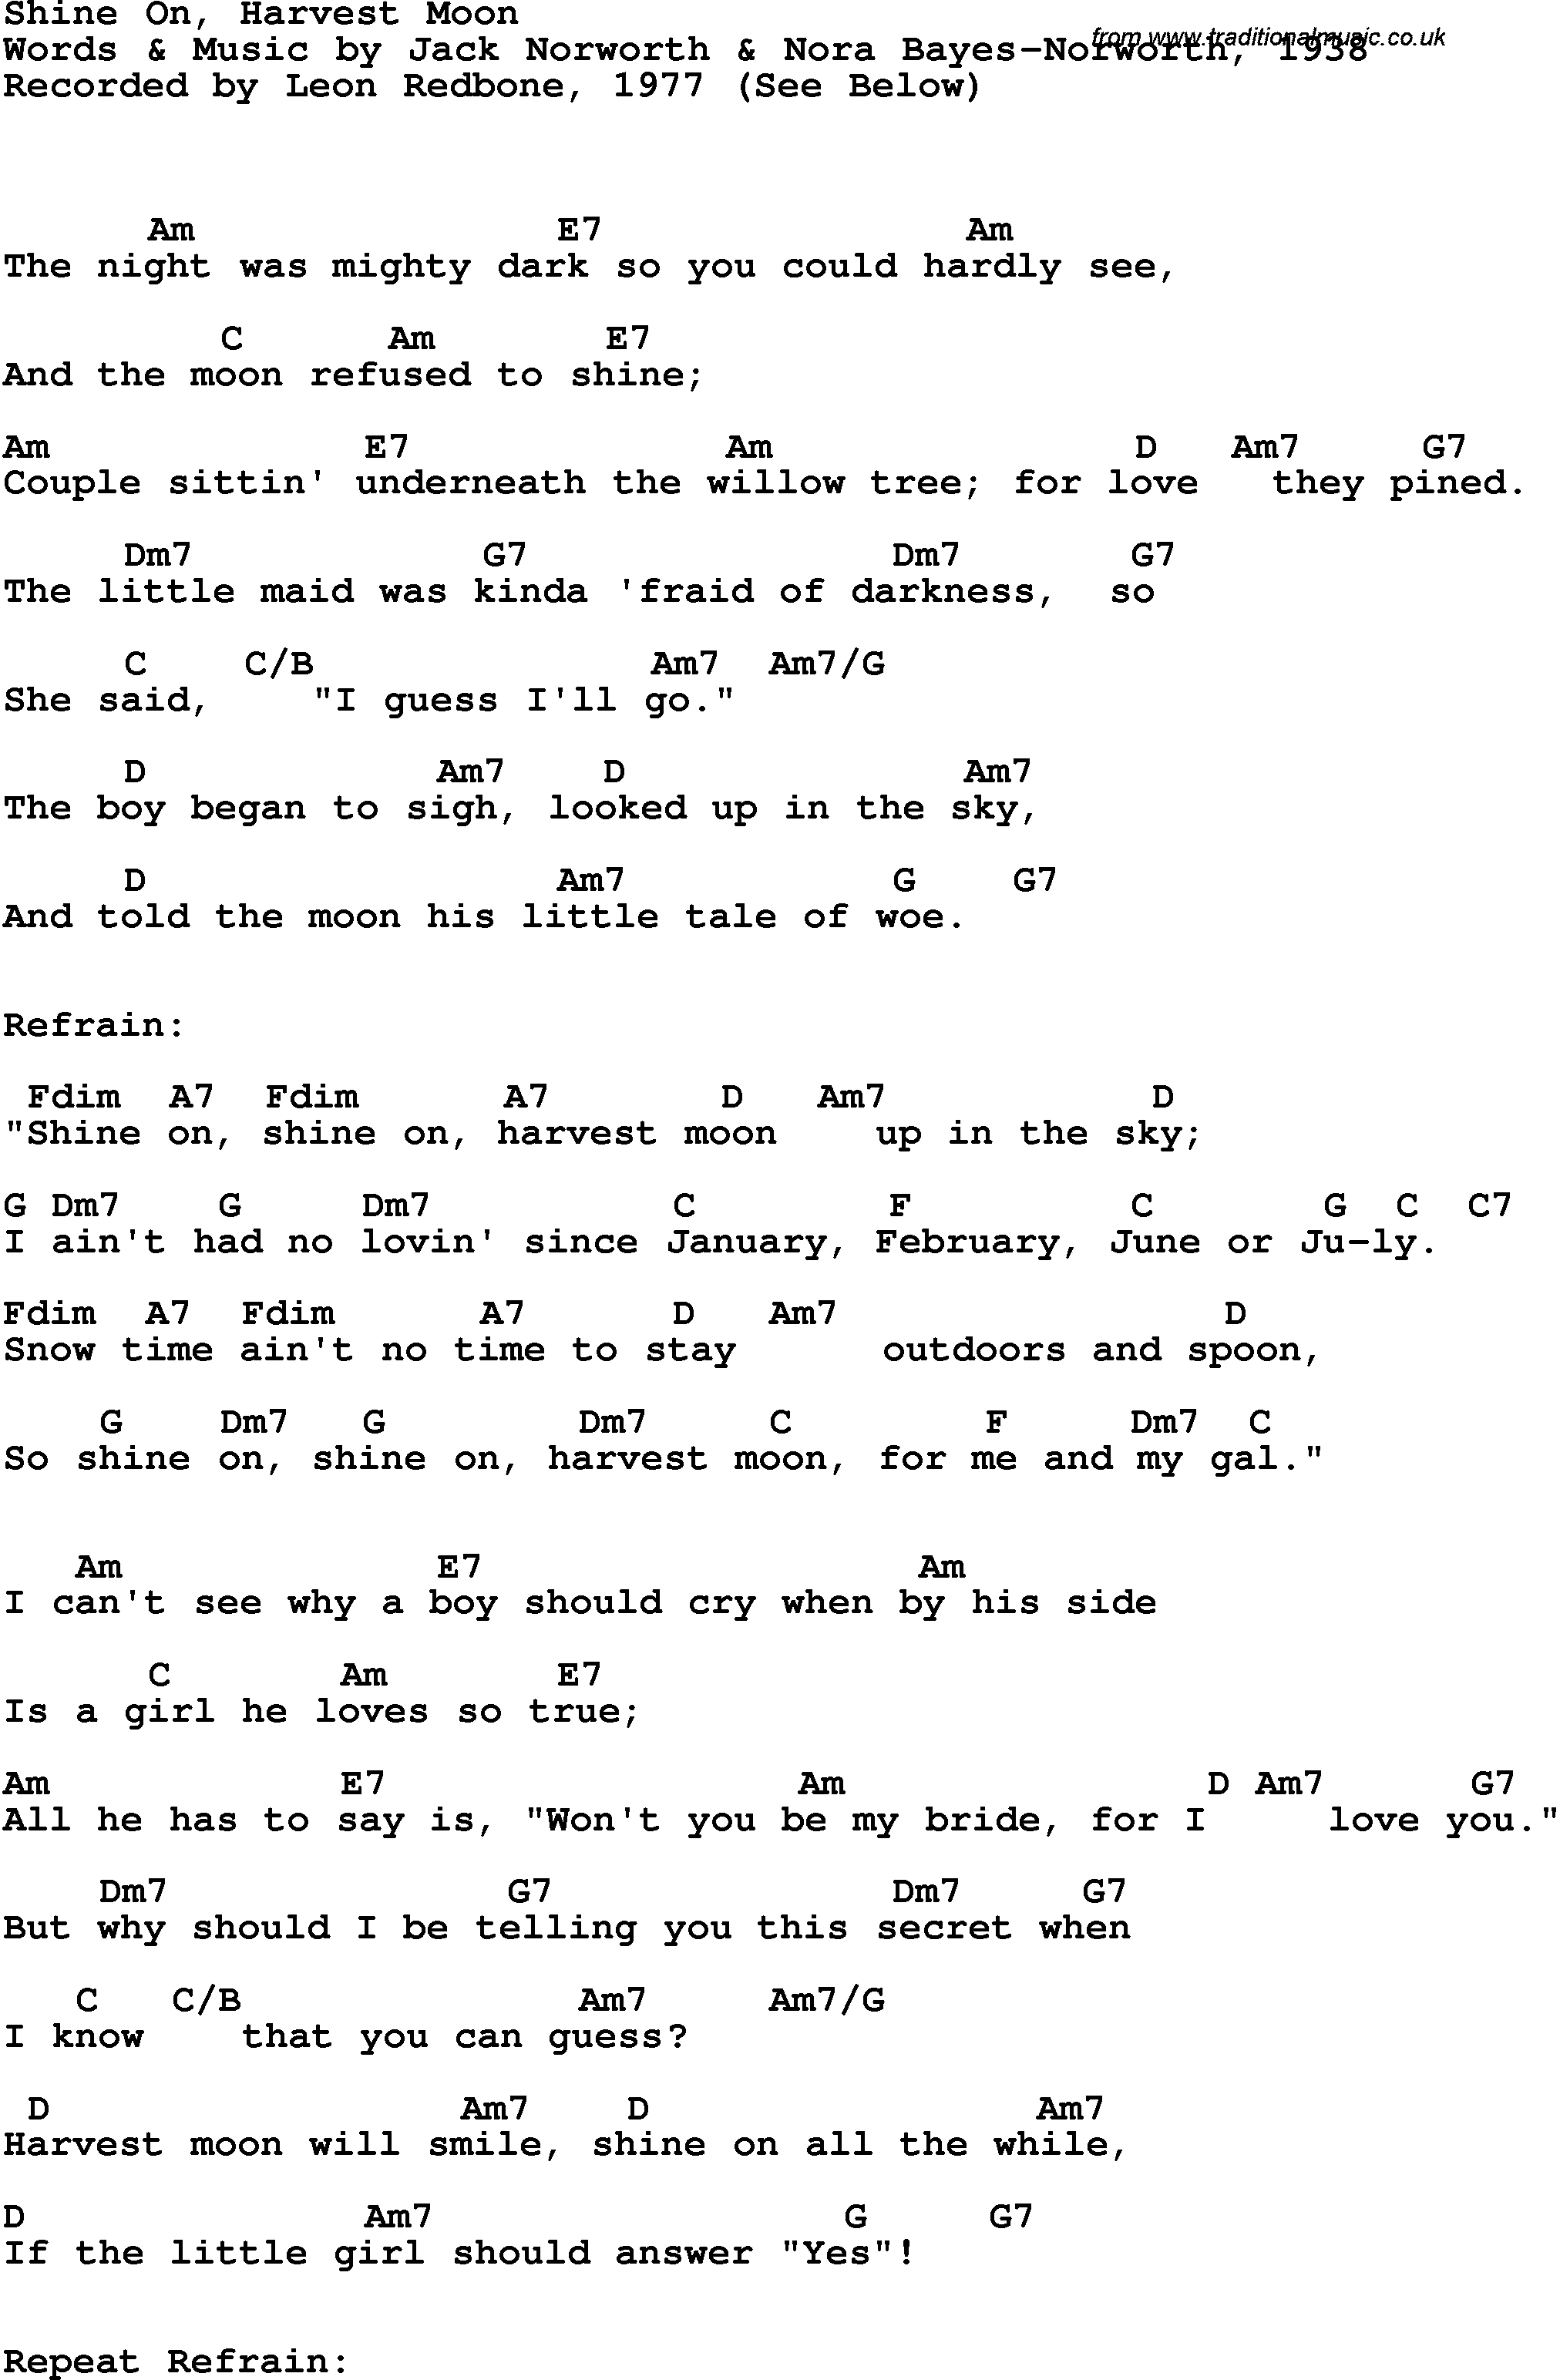 Song Lyrics With Guitar Chords For Shine On Harvest Moon Leon